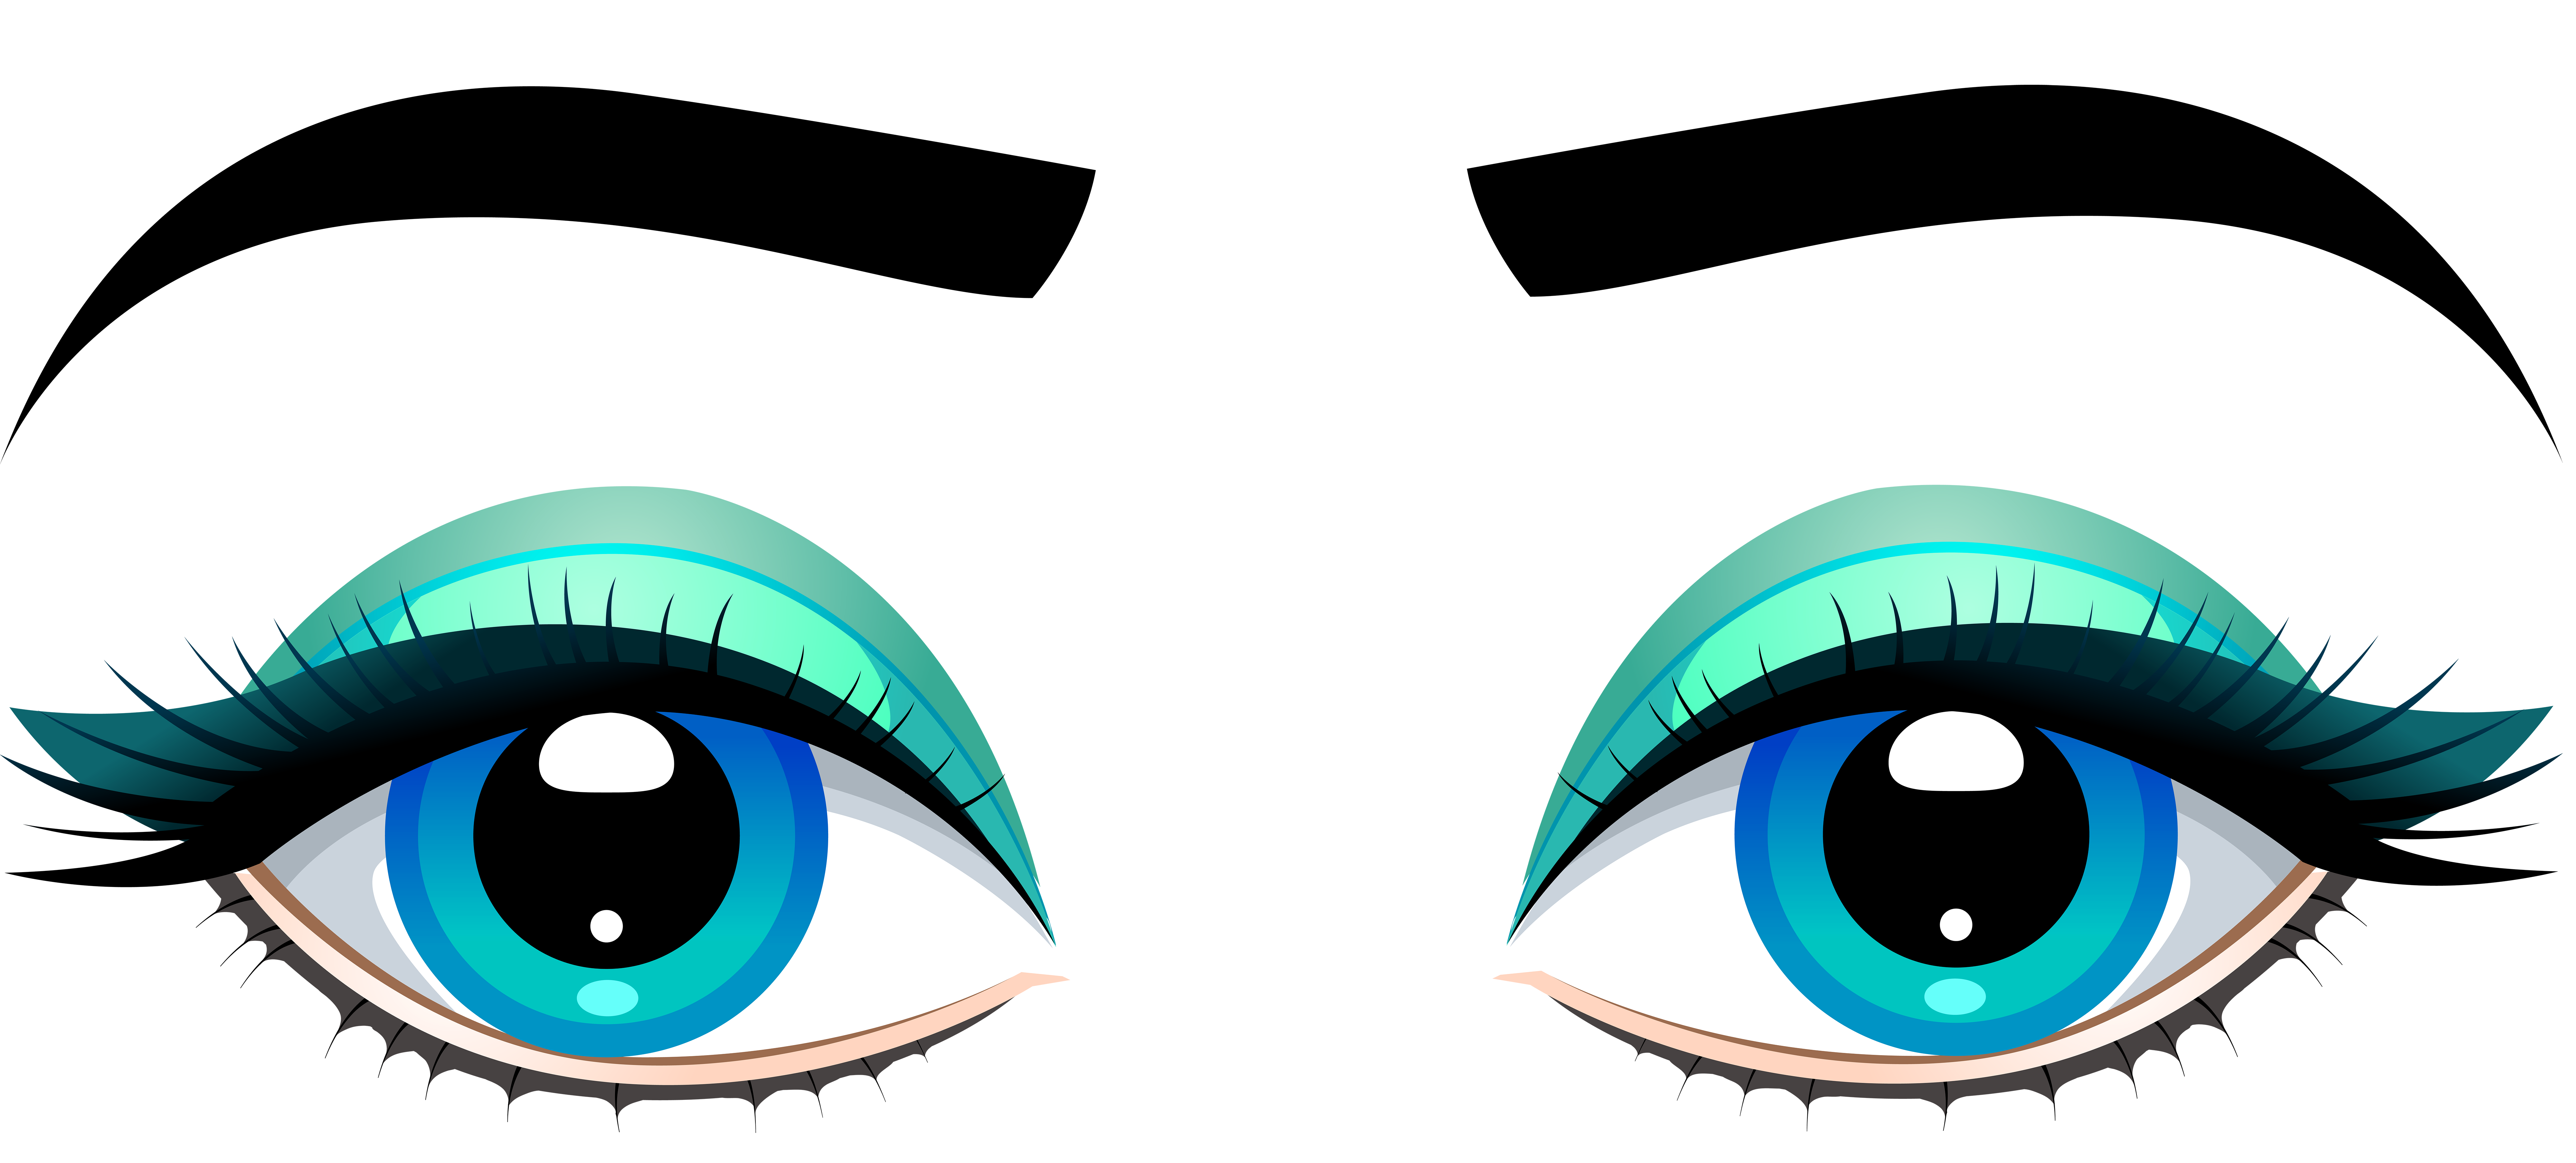 Female eyes with eyebrows. Eyebrow clipart blue eye graphic library stock